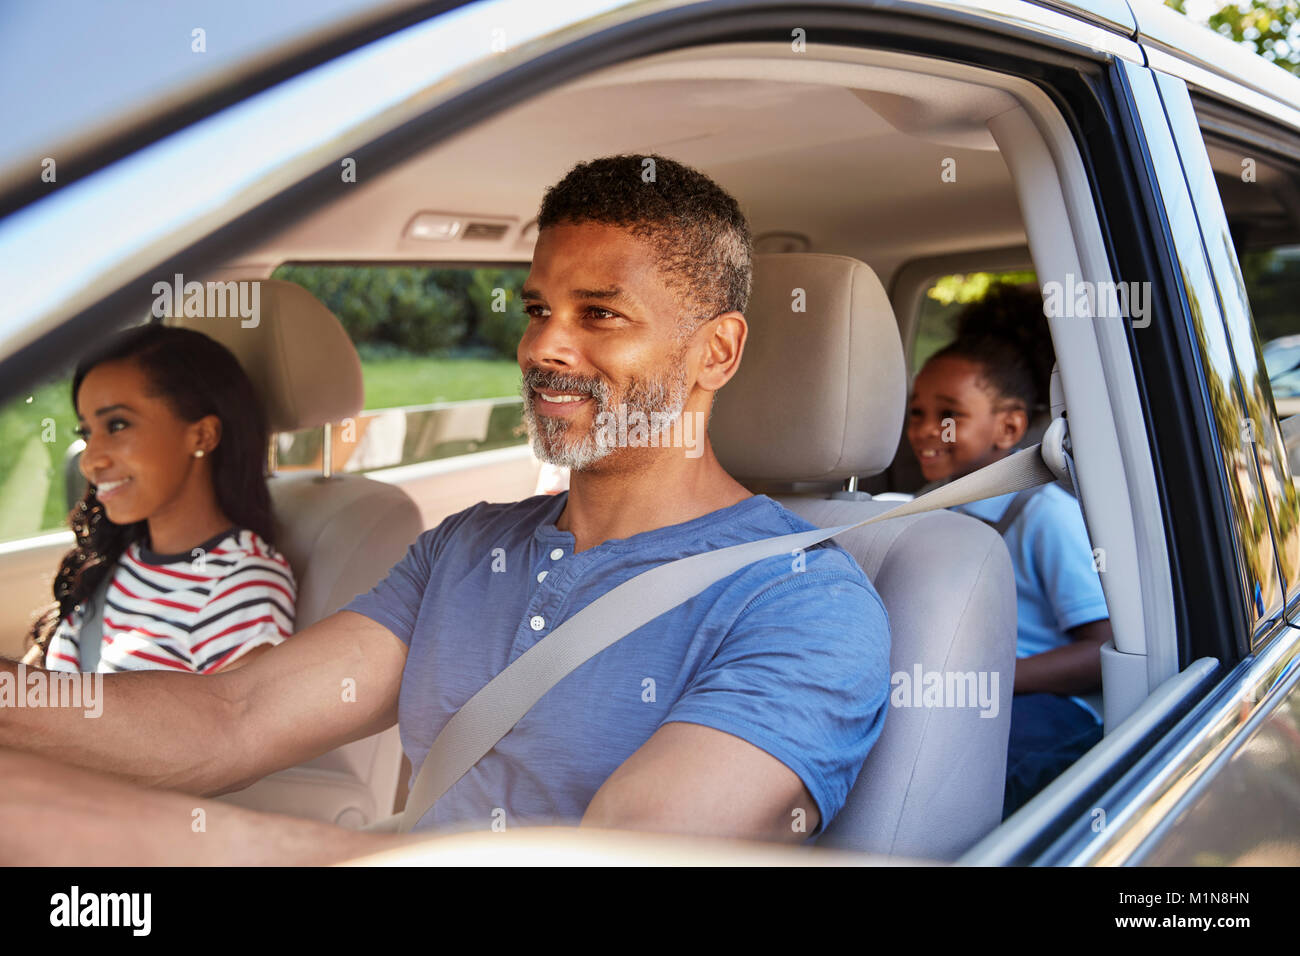 Family In Car Going On Road Trip - Stock Image